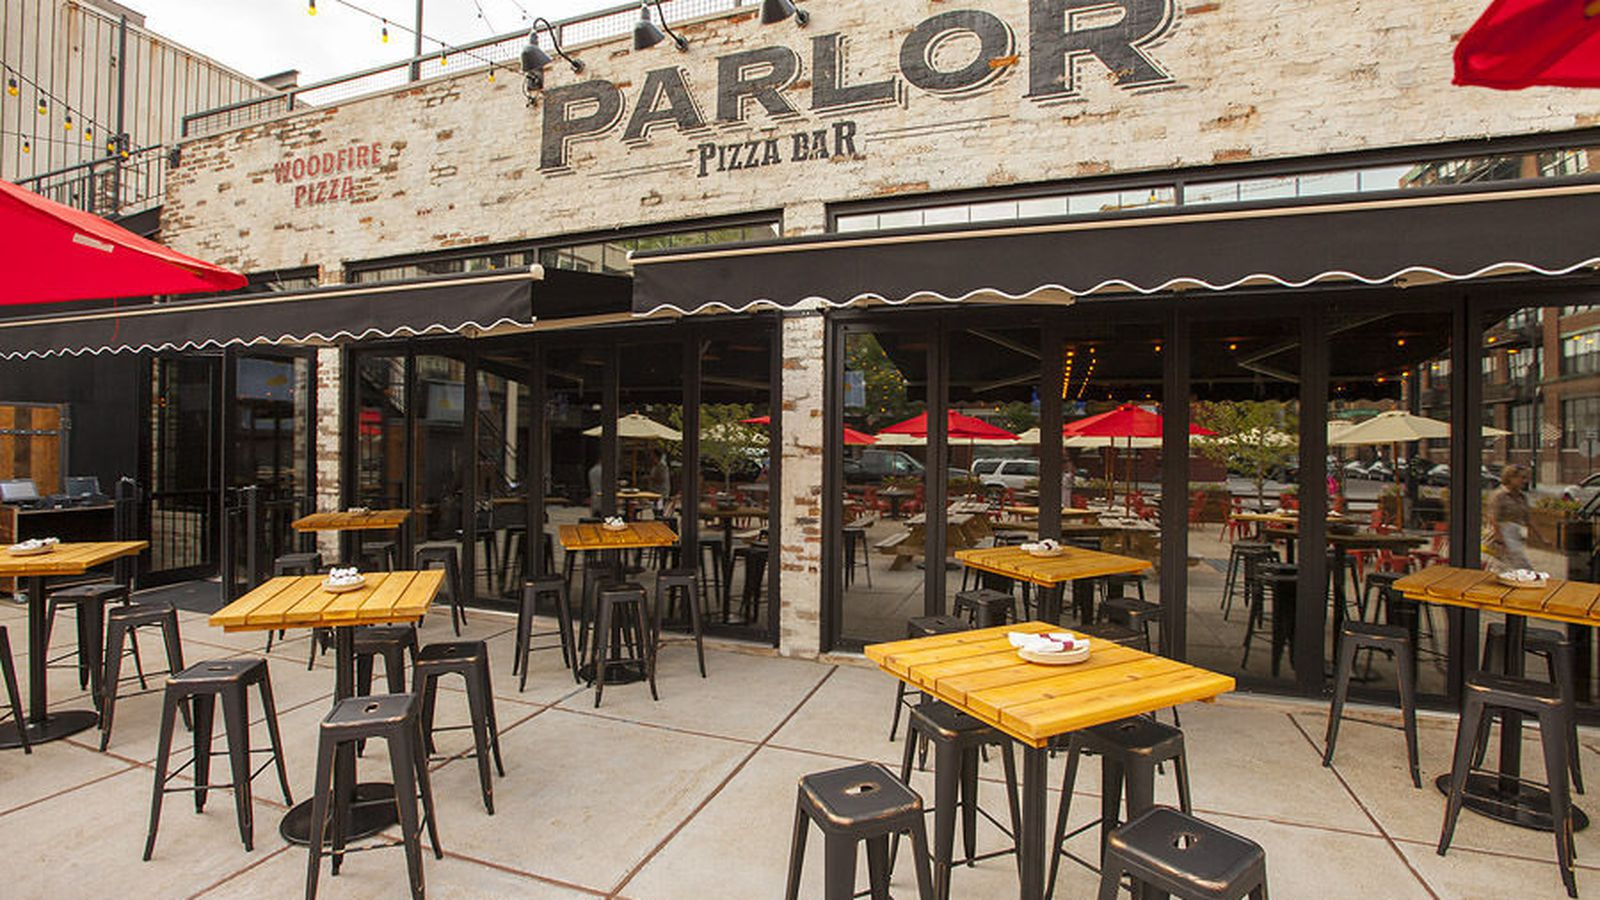 Inside And The Menus For The Massive Parlor Pizza Bar